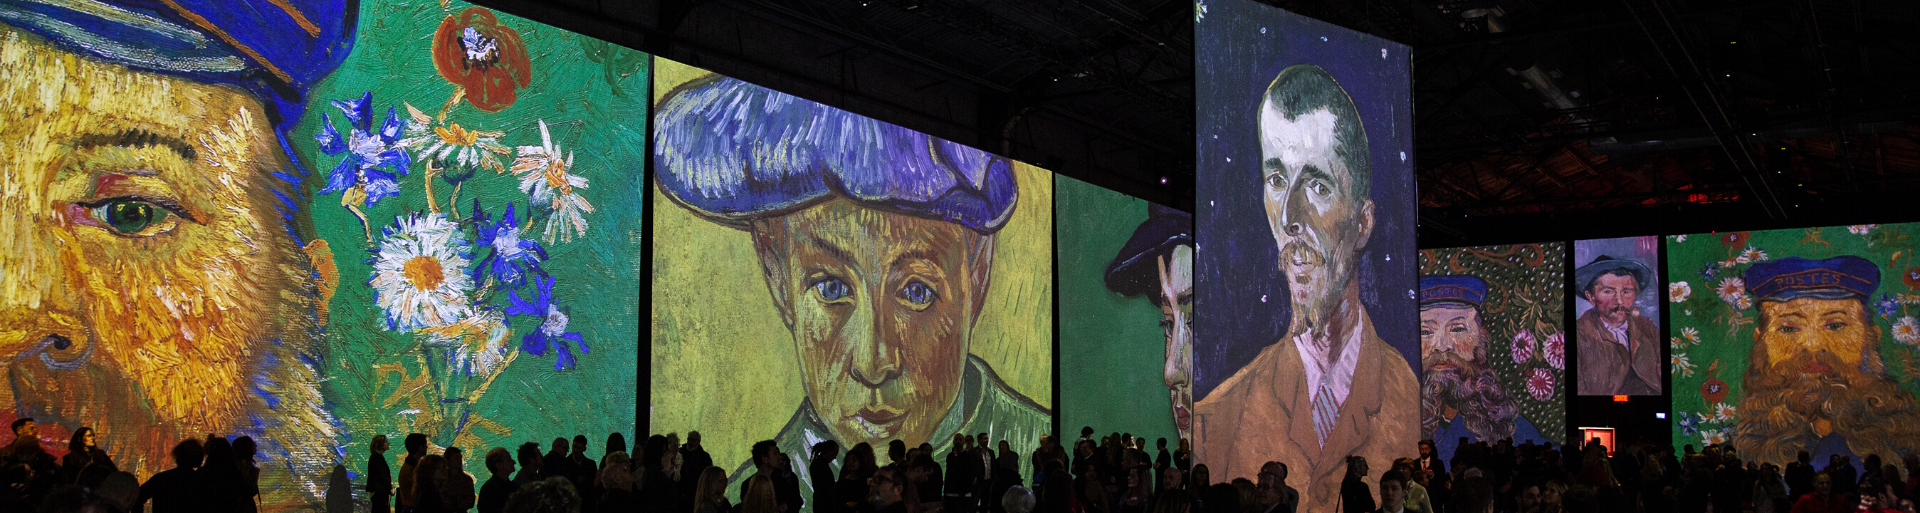 Immersive projection screens